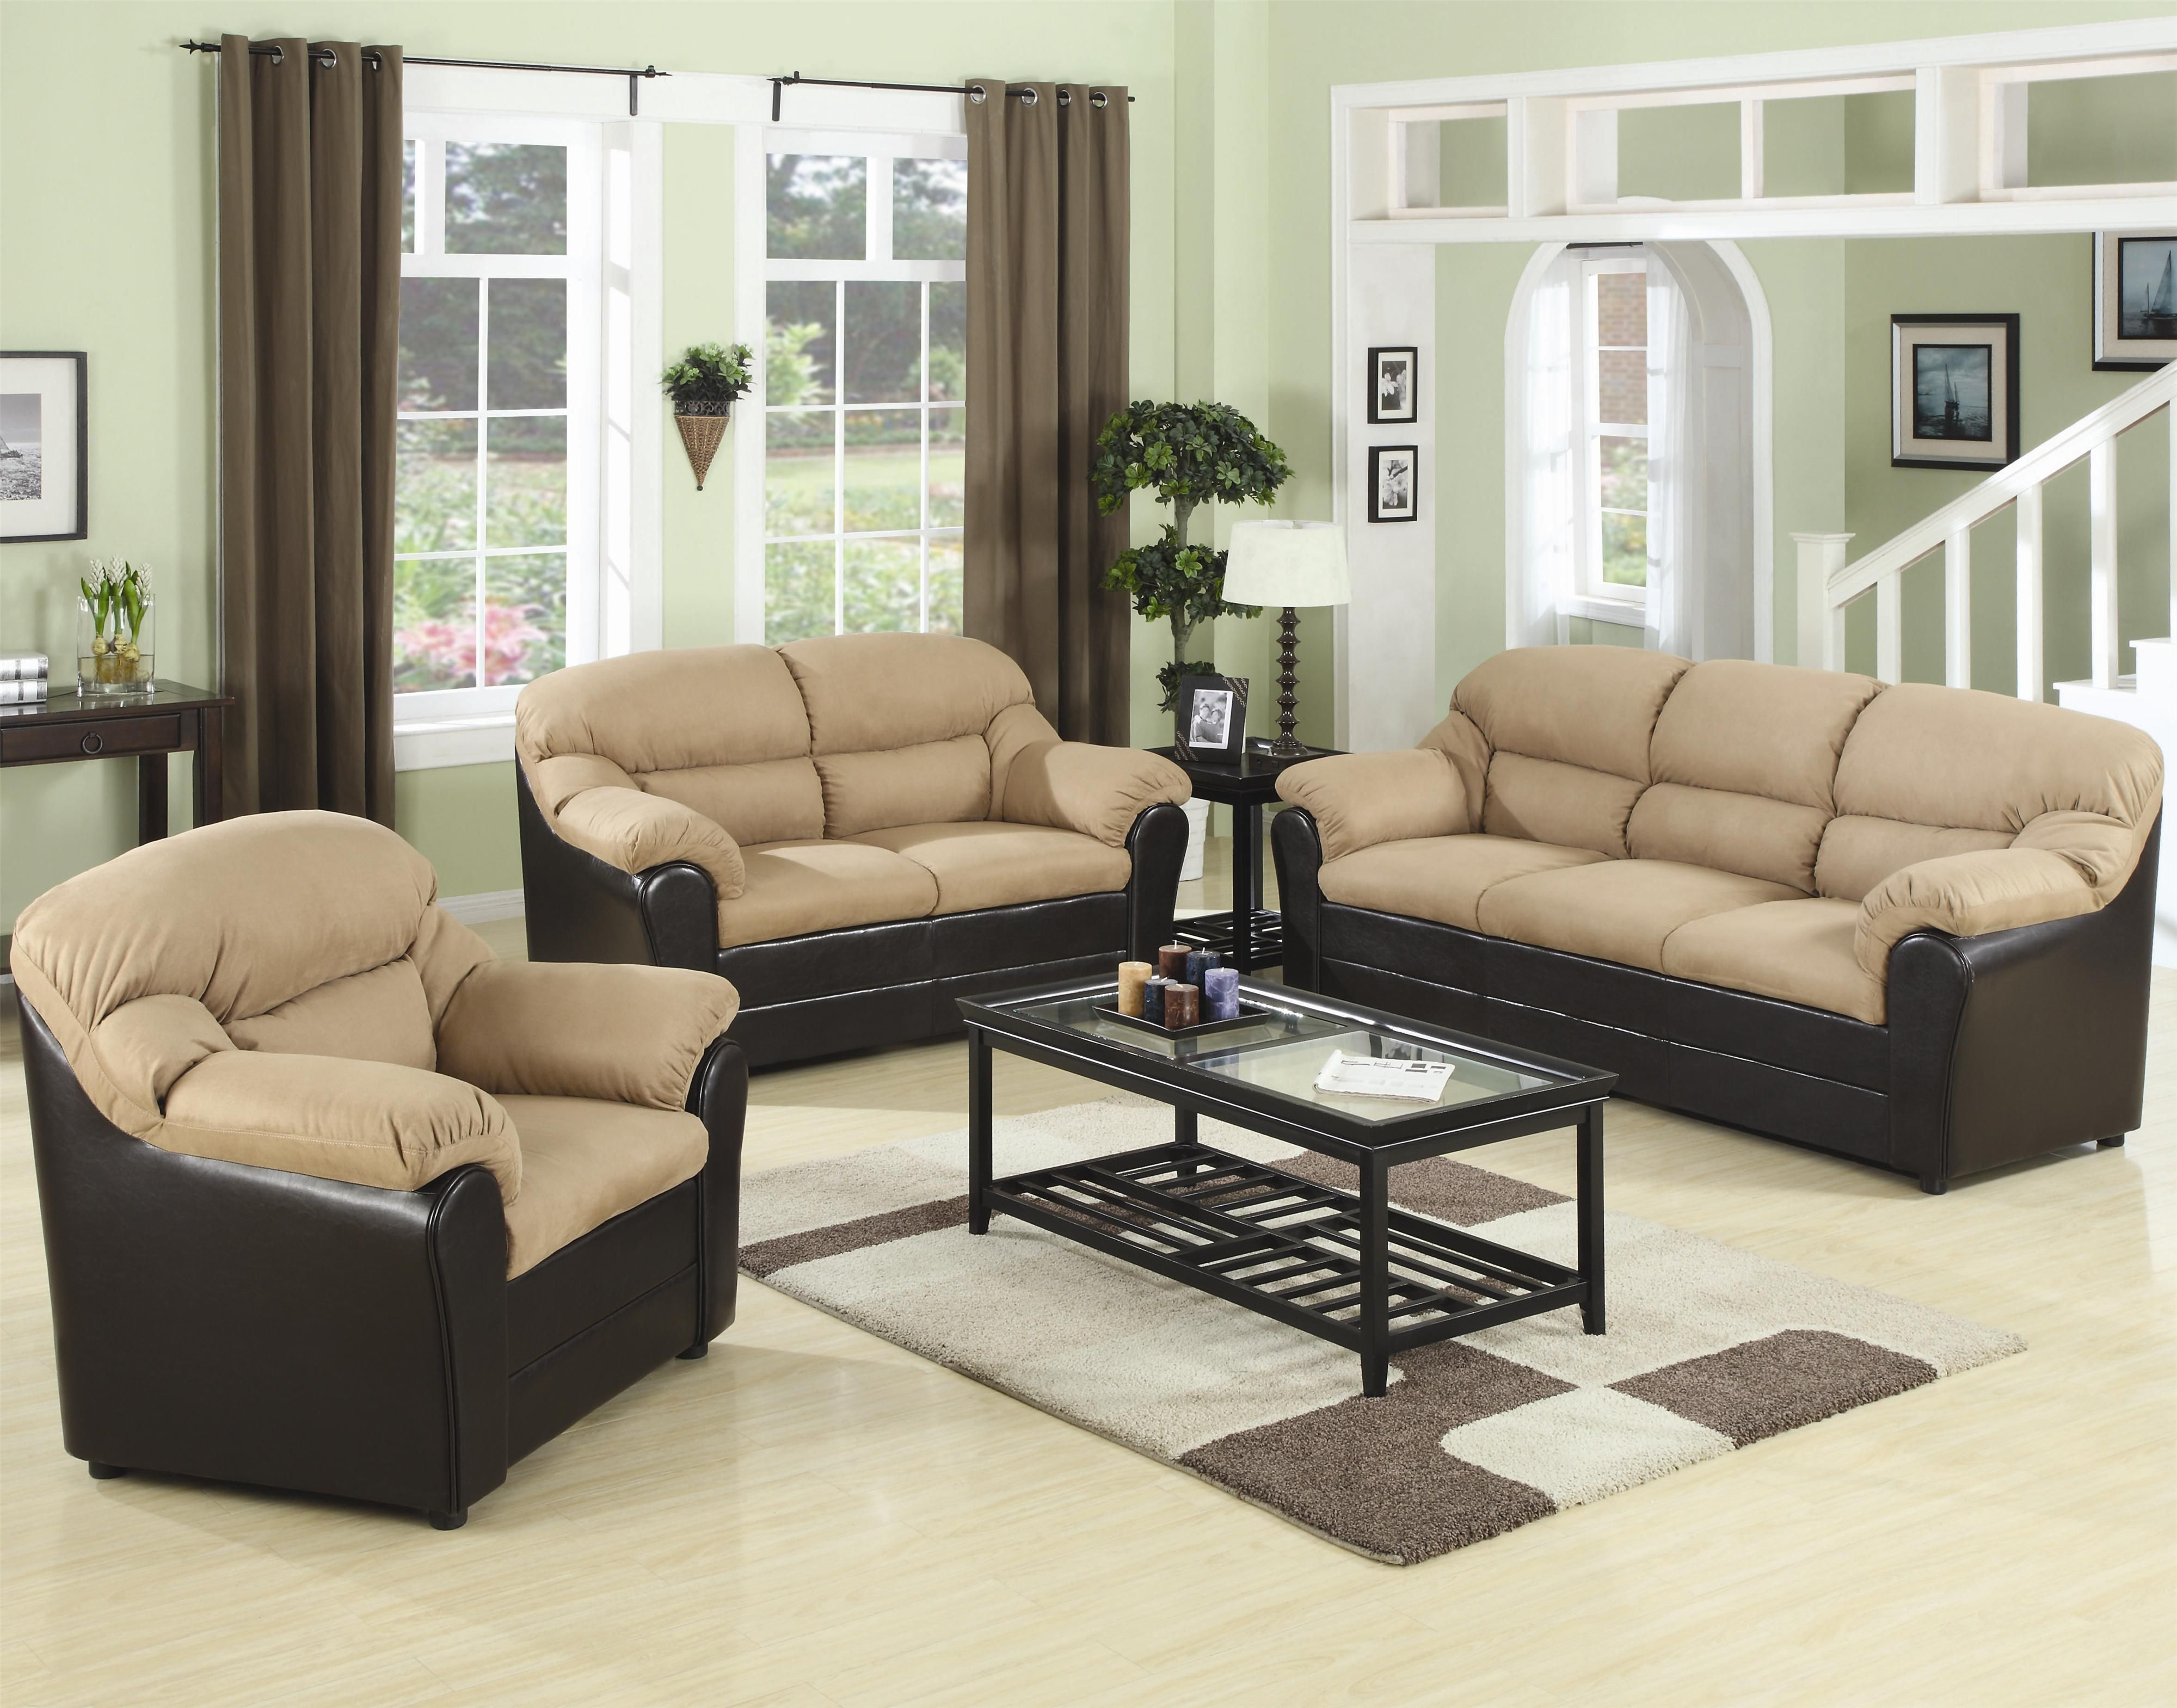 Affordable Living Room Sets With Elegant Sofa With Minimalist Table intended for Cheapest Living Room Sets